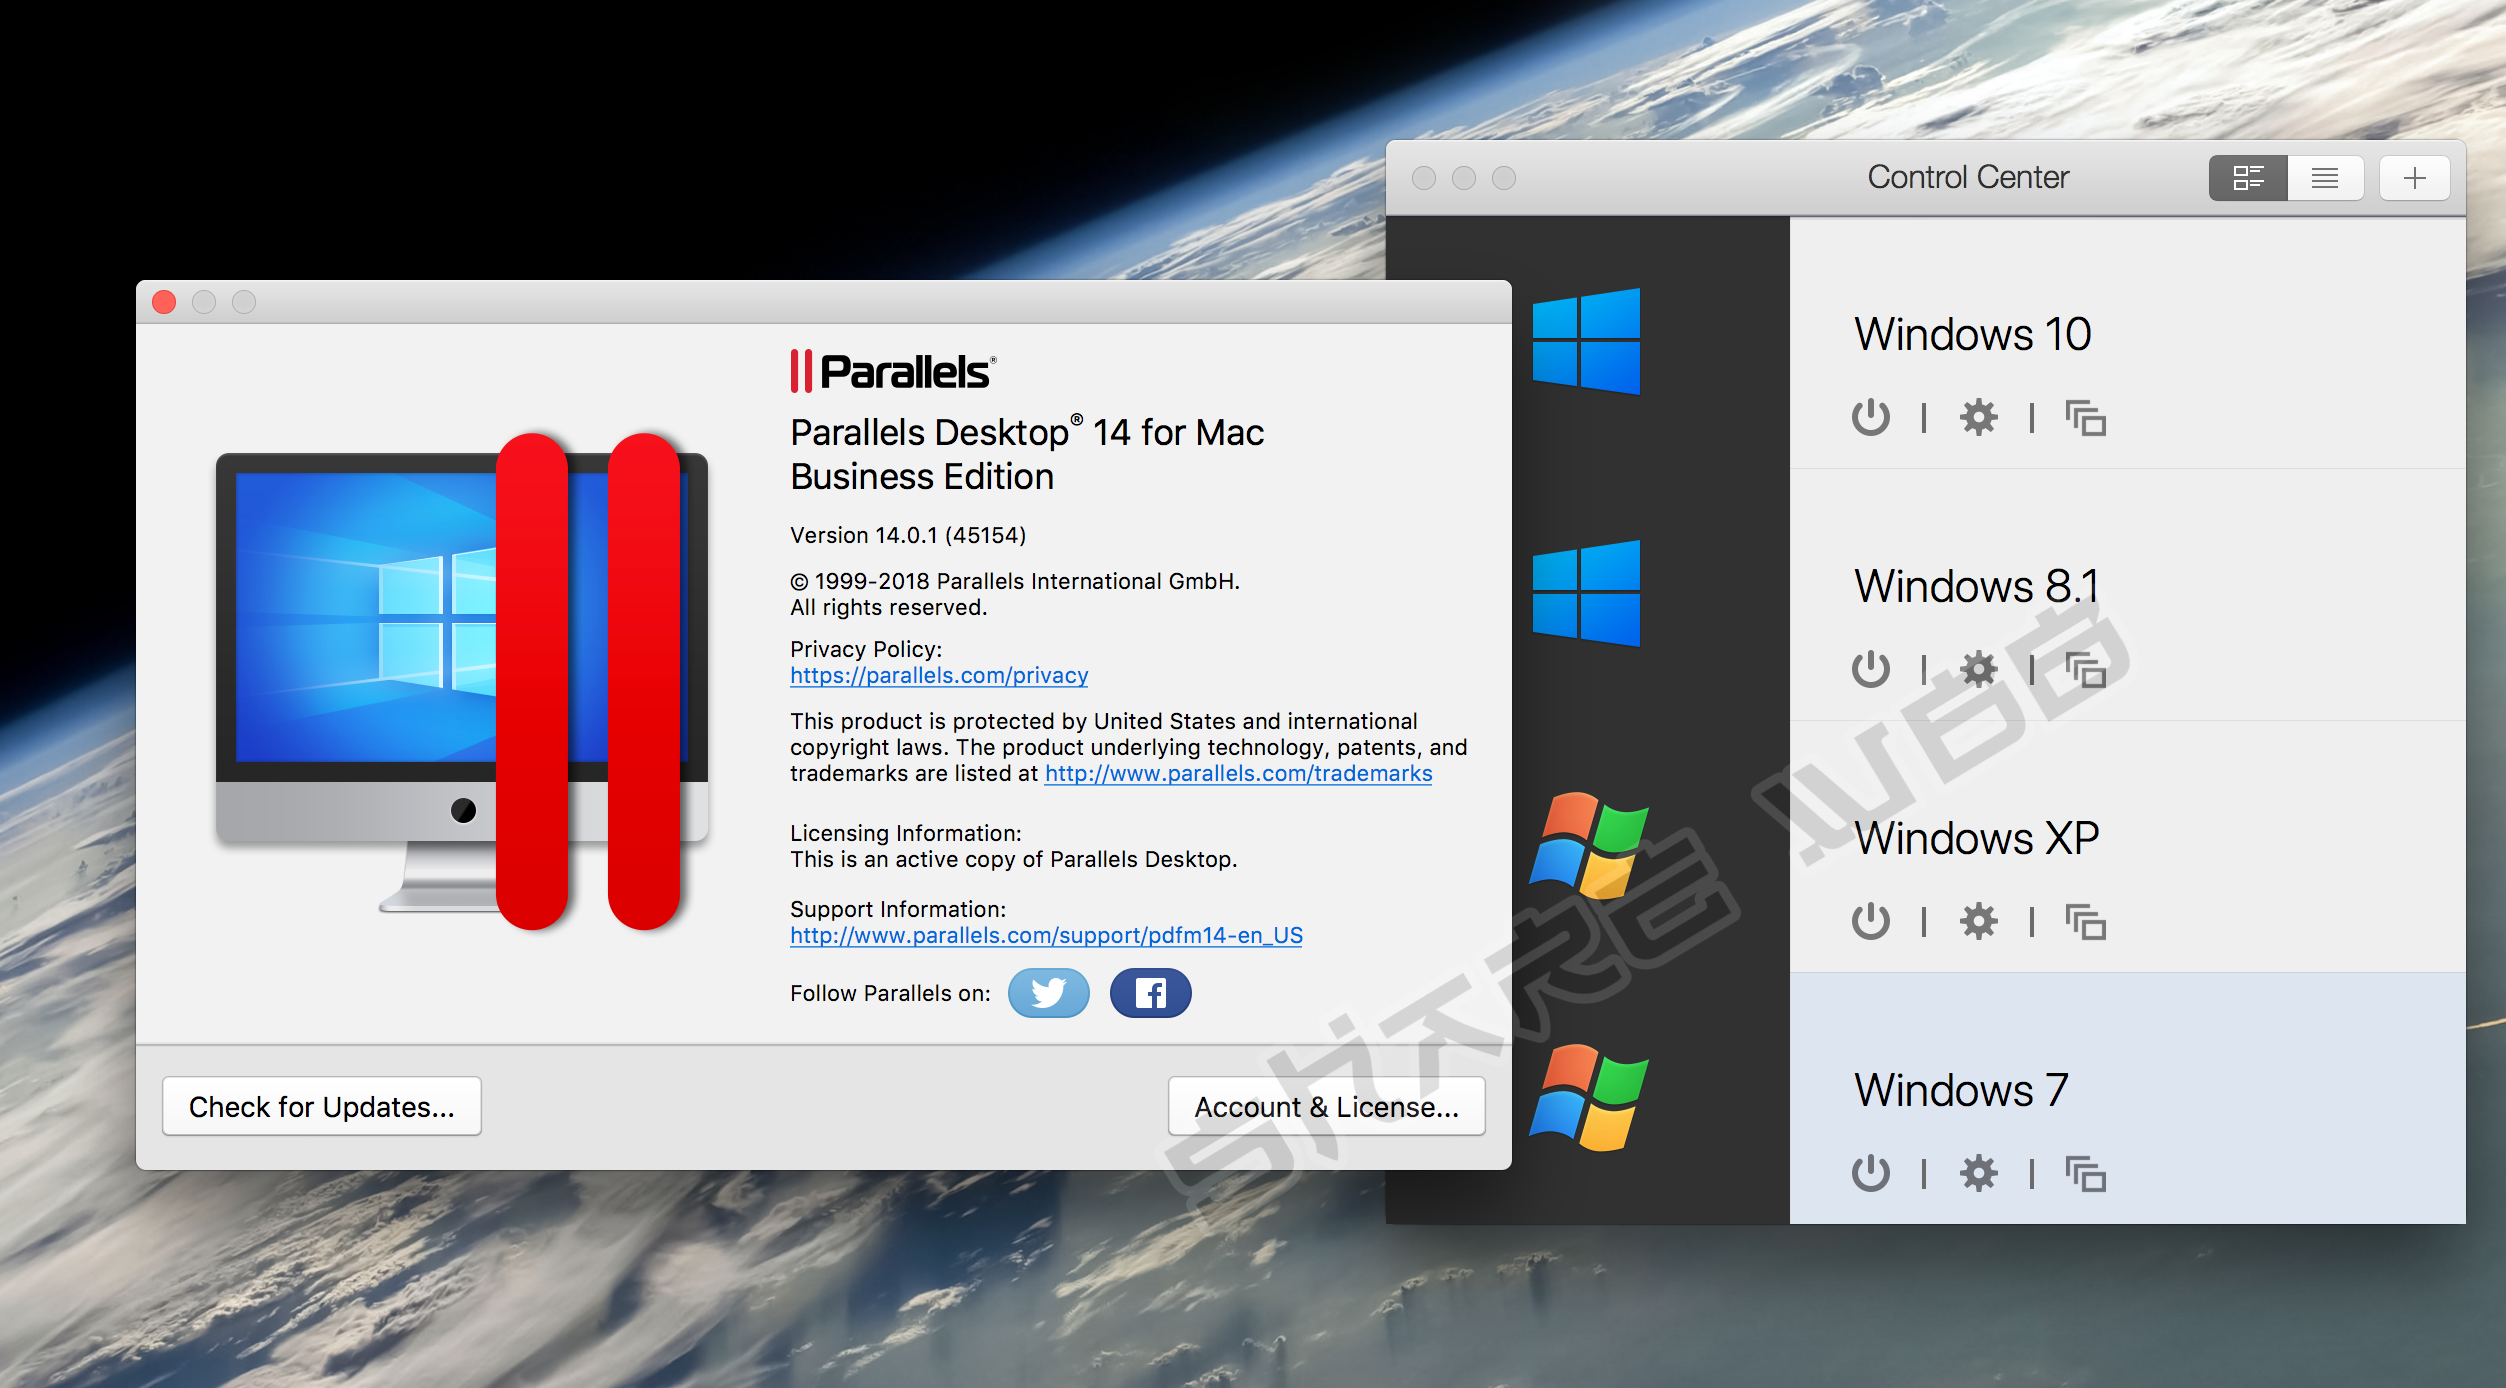 Parallels Desktop for Mac Business Edition 14.0.1 (45154) – sHaRewBB